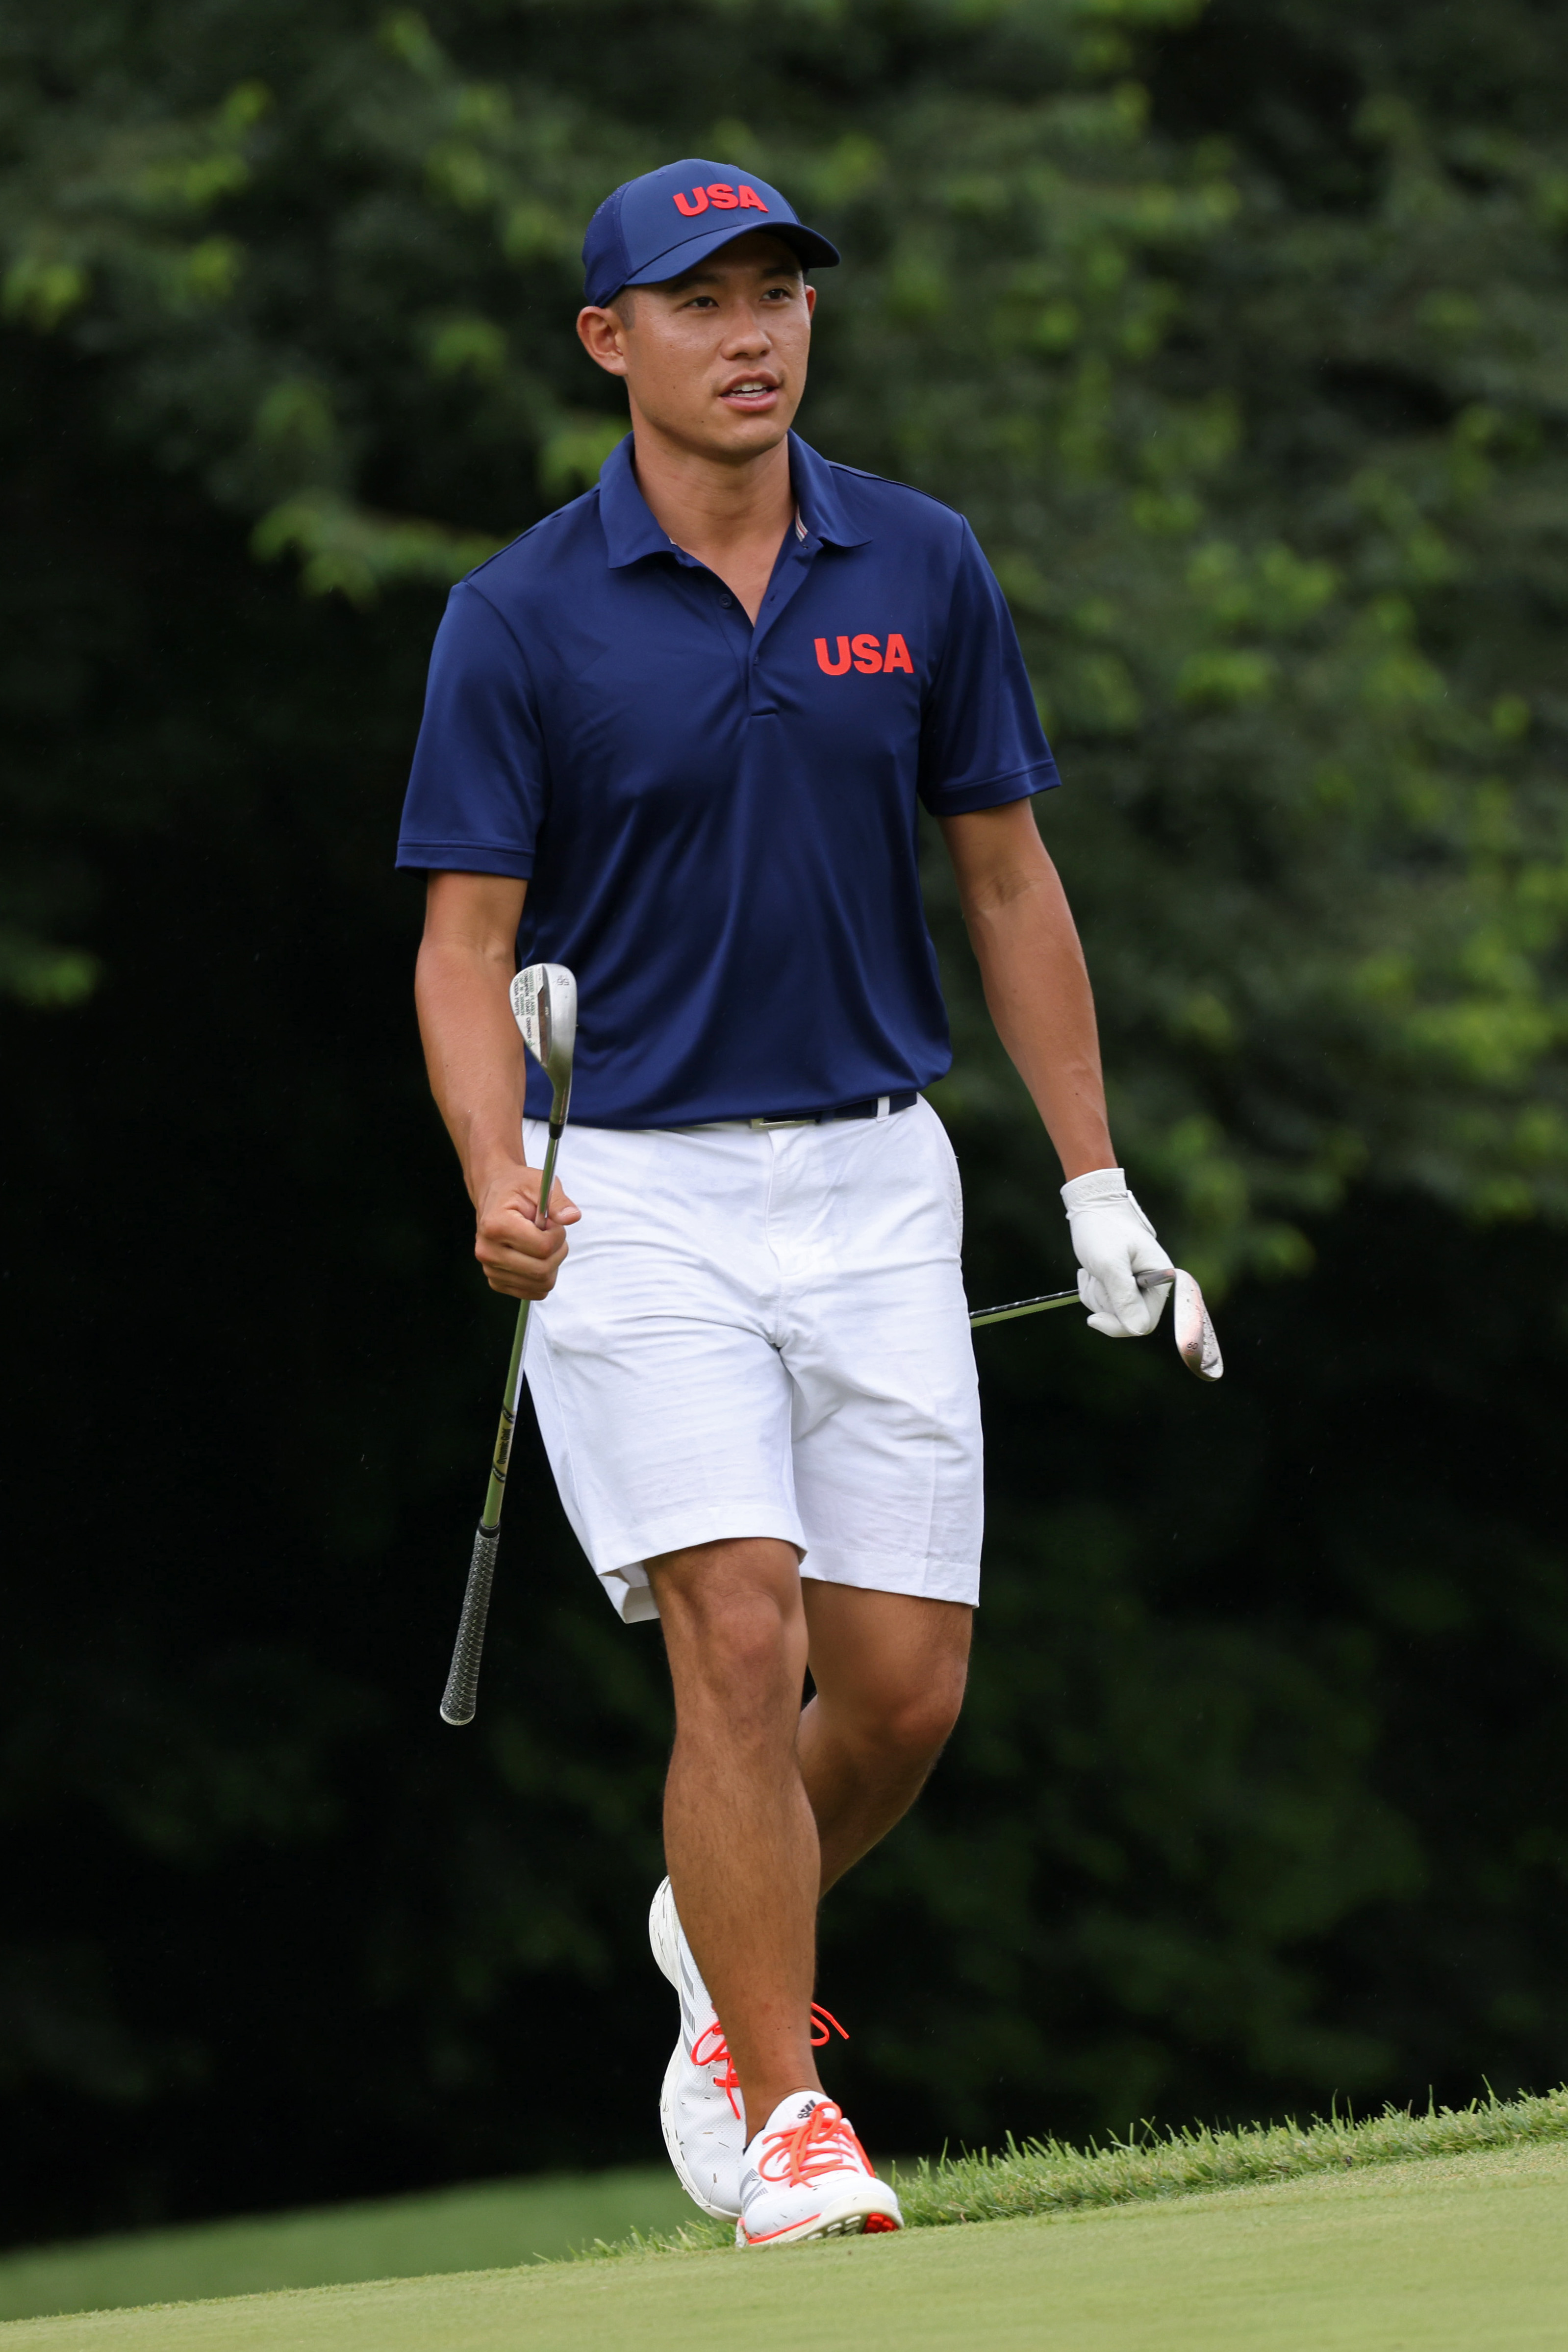 Collin Morikawa of Team USA plays during a practice round at Kasumigaseki Country Club ahead of the Tokyo Olympic Games on July 27, 2021 in Tokyo, Japan.